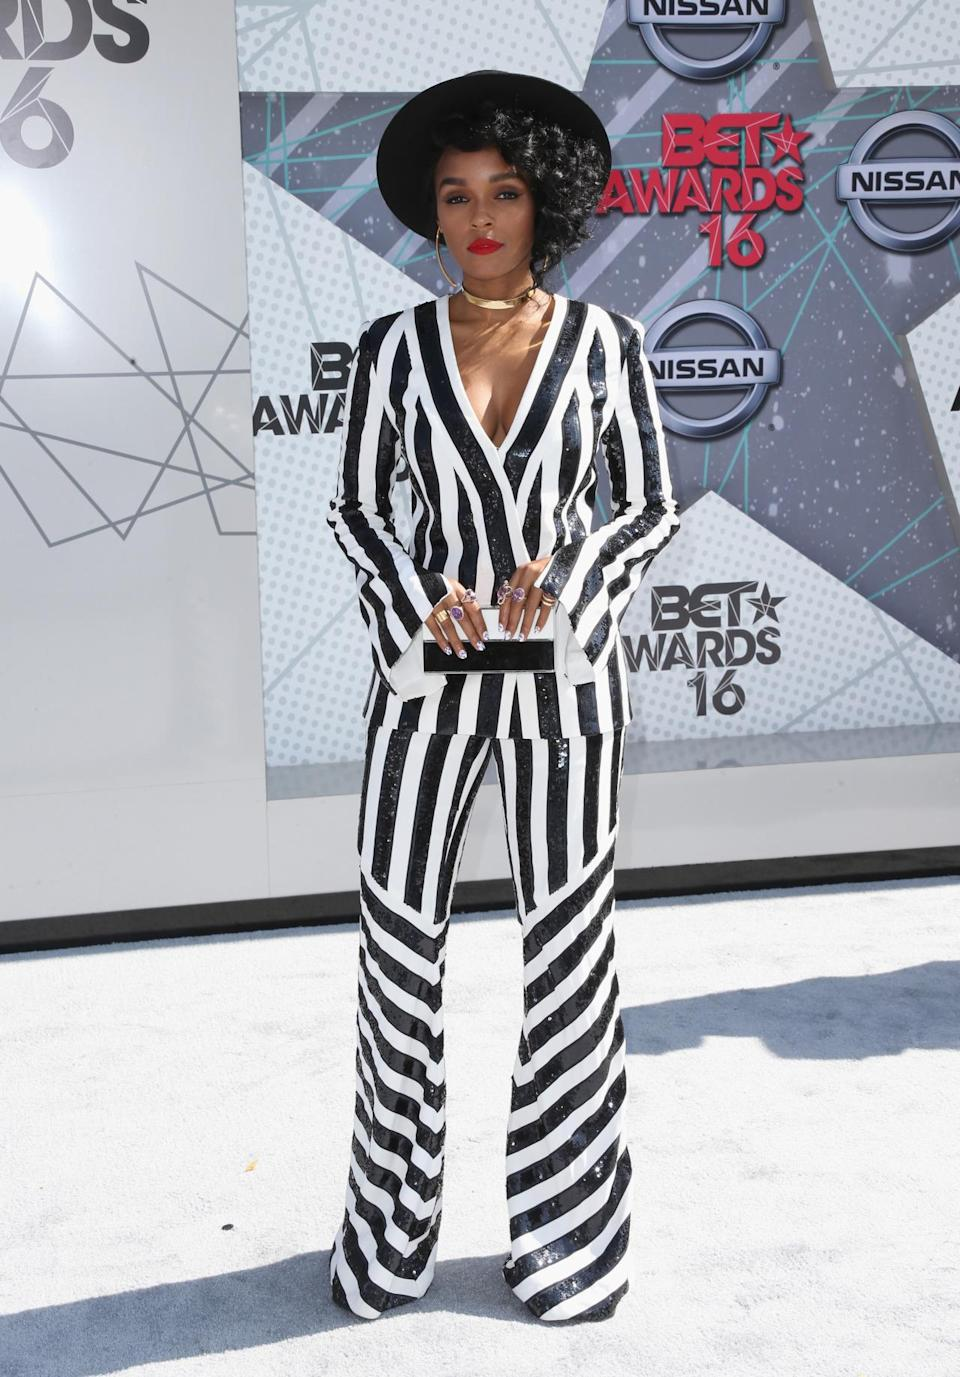 <p>While Janelle Monae only wears black and white, she always manages to wear something cool and different despite her limited color palate. For the 2016 BET Awards, she selected a striped sequin suit from Sass & Bide. She accessorized with a wide-brimmed hat, gold choker, oversized hoop earrings, and purple rings to honor Prince. <i>(Photo: Getty Images)</i></p>